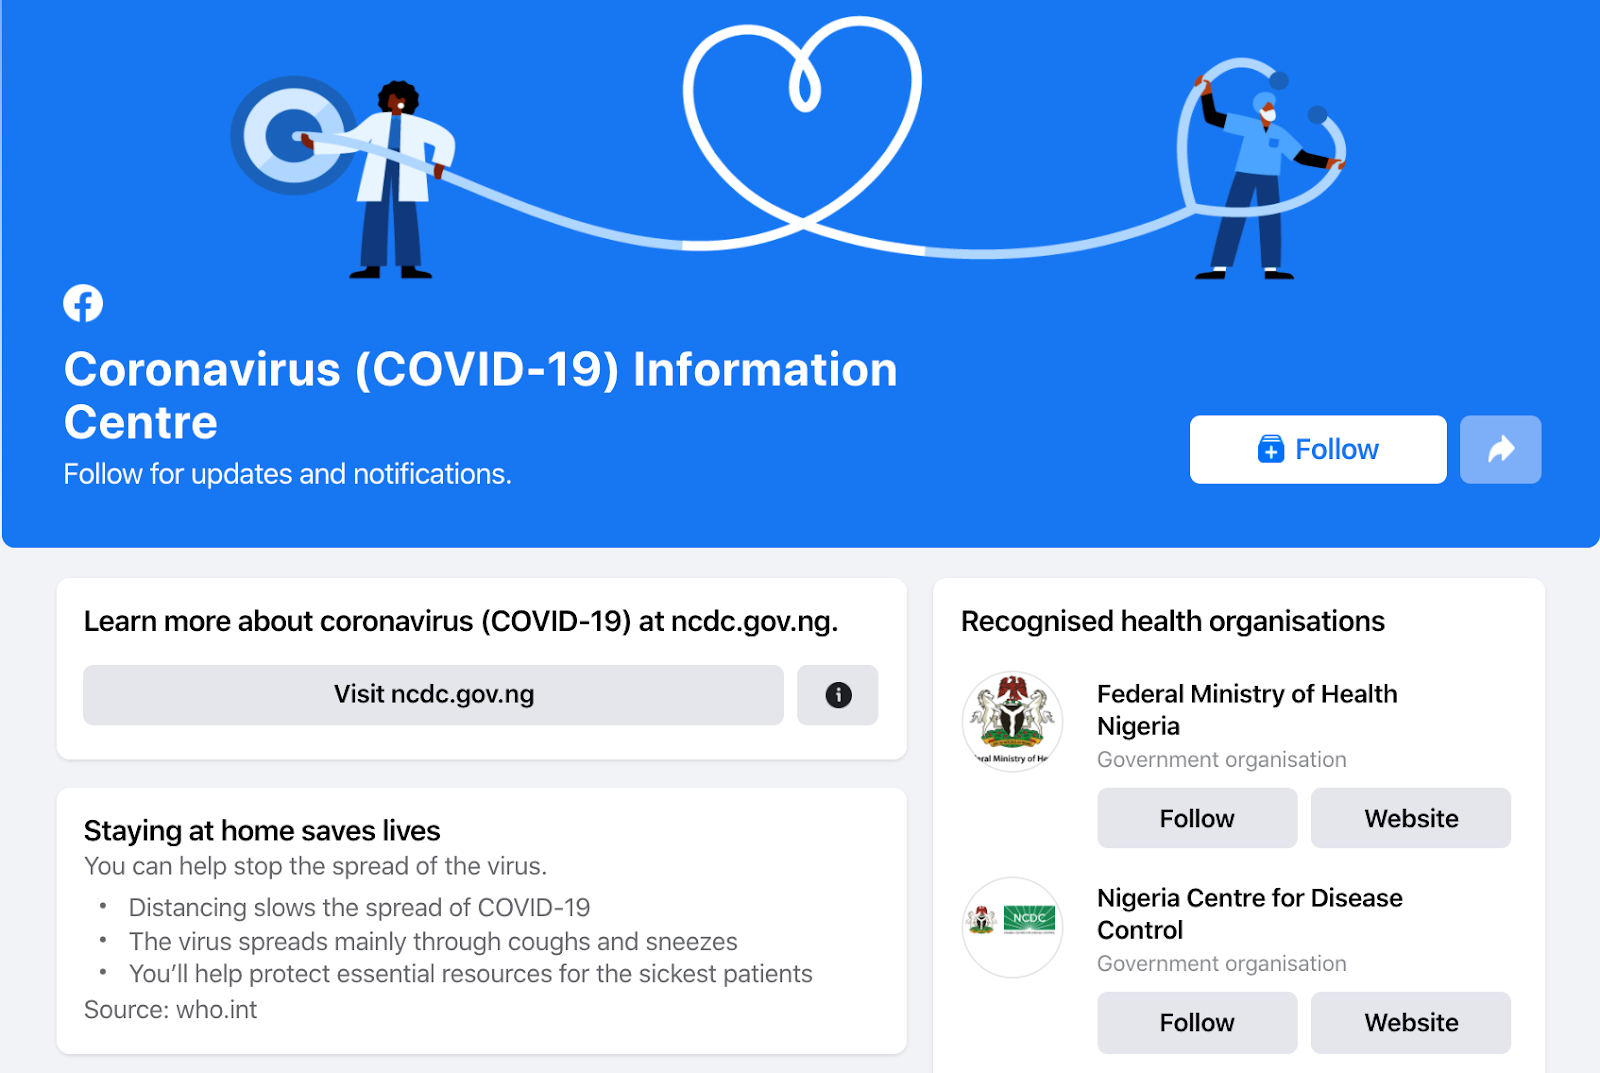 Facebook launches Coronavirus Information Centre in Nigeria, 16 Other African Countries - Brand Spur